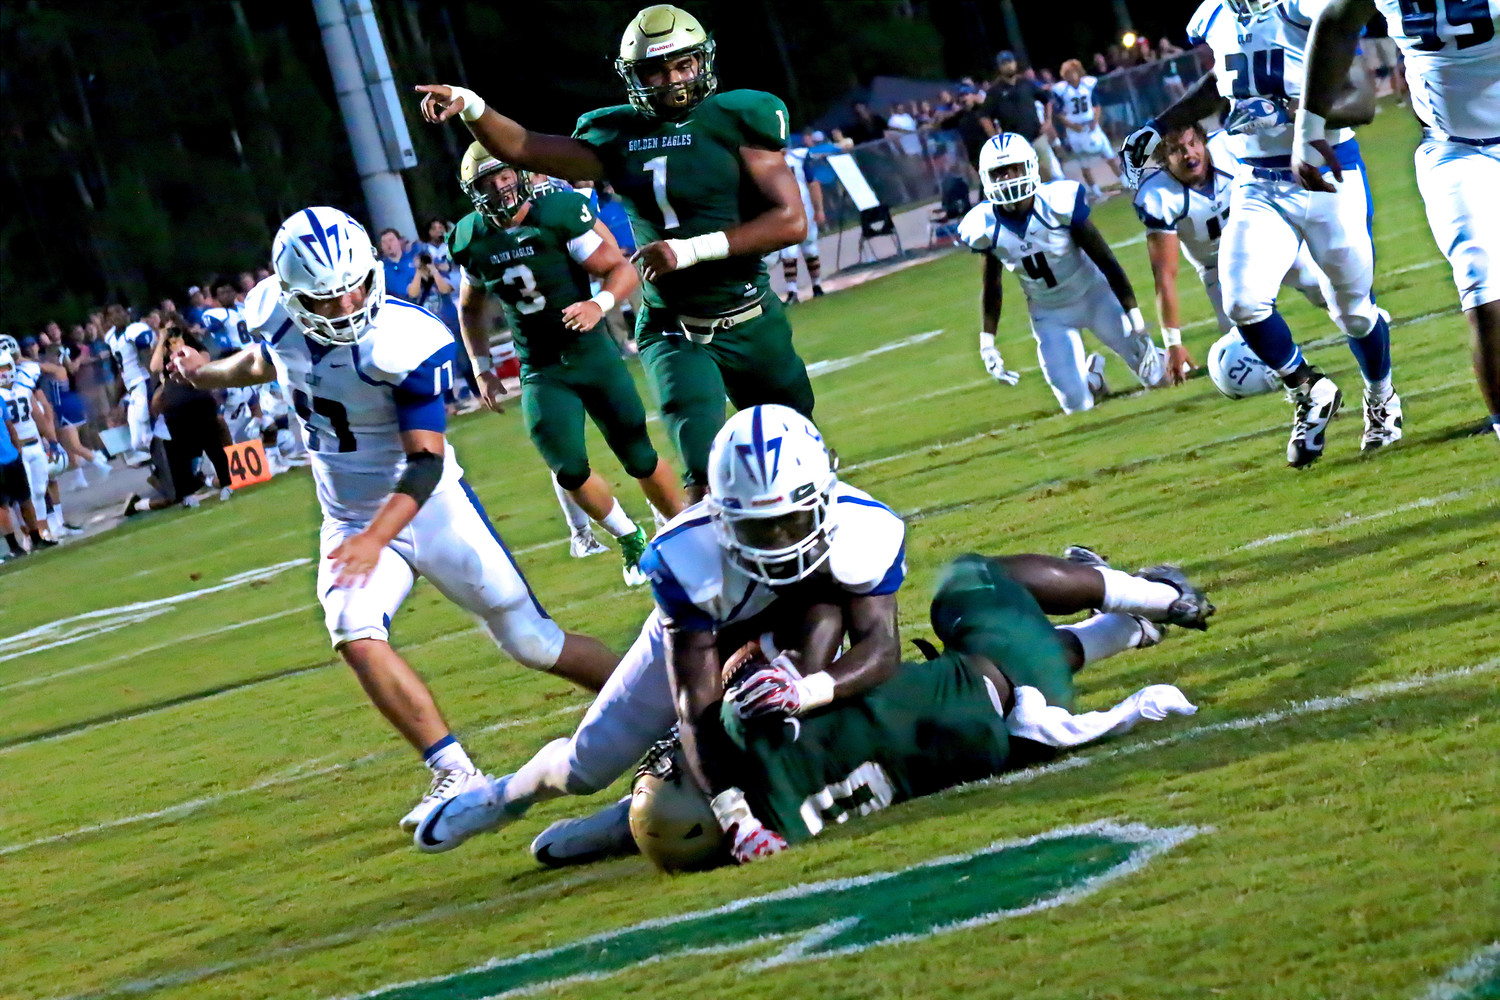 Returning senior fullback Chauncey Garrison pushed for 151 yards and this go-ahead score in the first half that tied the game at 7-7 in the first half.  Garrison suffered season-ending injury in game, but is set to run again in 2017.